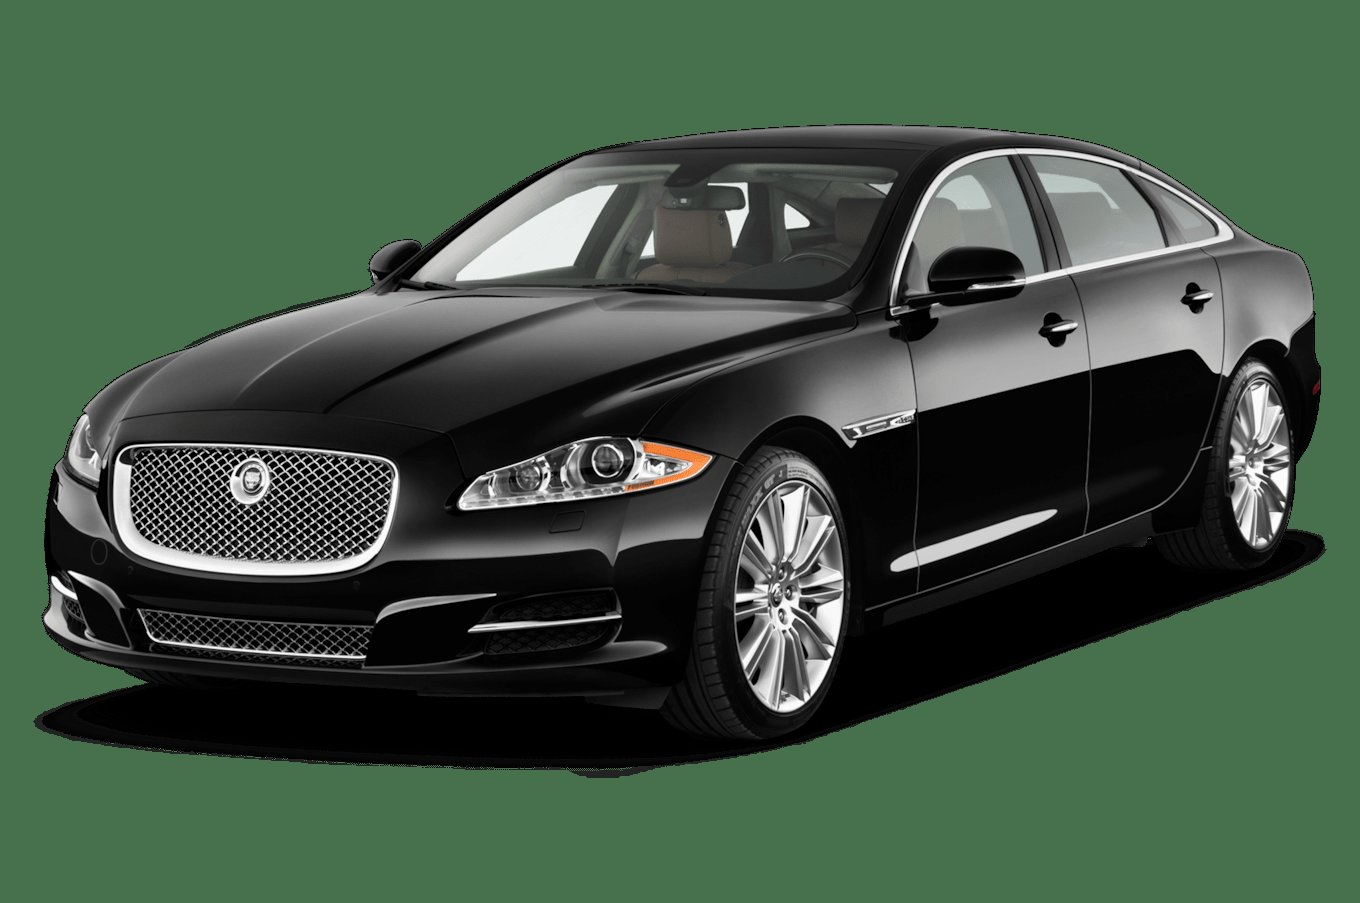 New 2012 Jaguar Xj Series Reviews And Rating Motor Trend On This Month